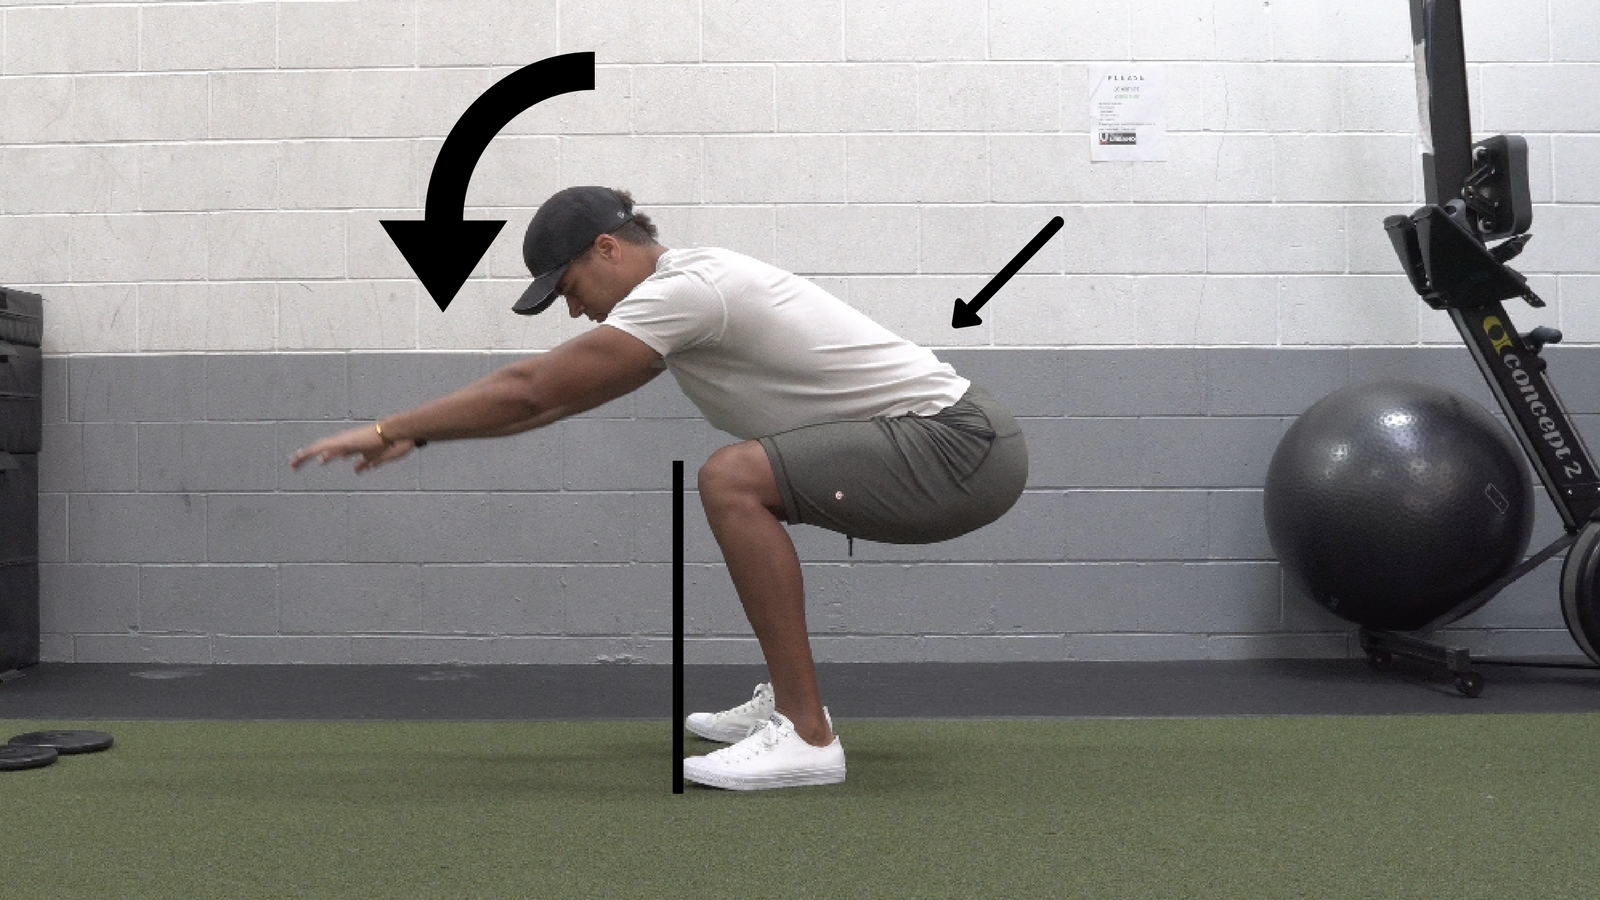 Torso Collapsing forward, Lower back under stress, Knees behind toes.